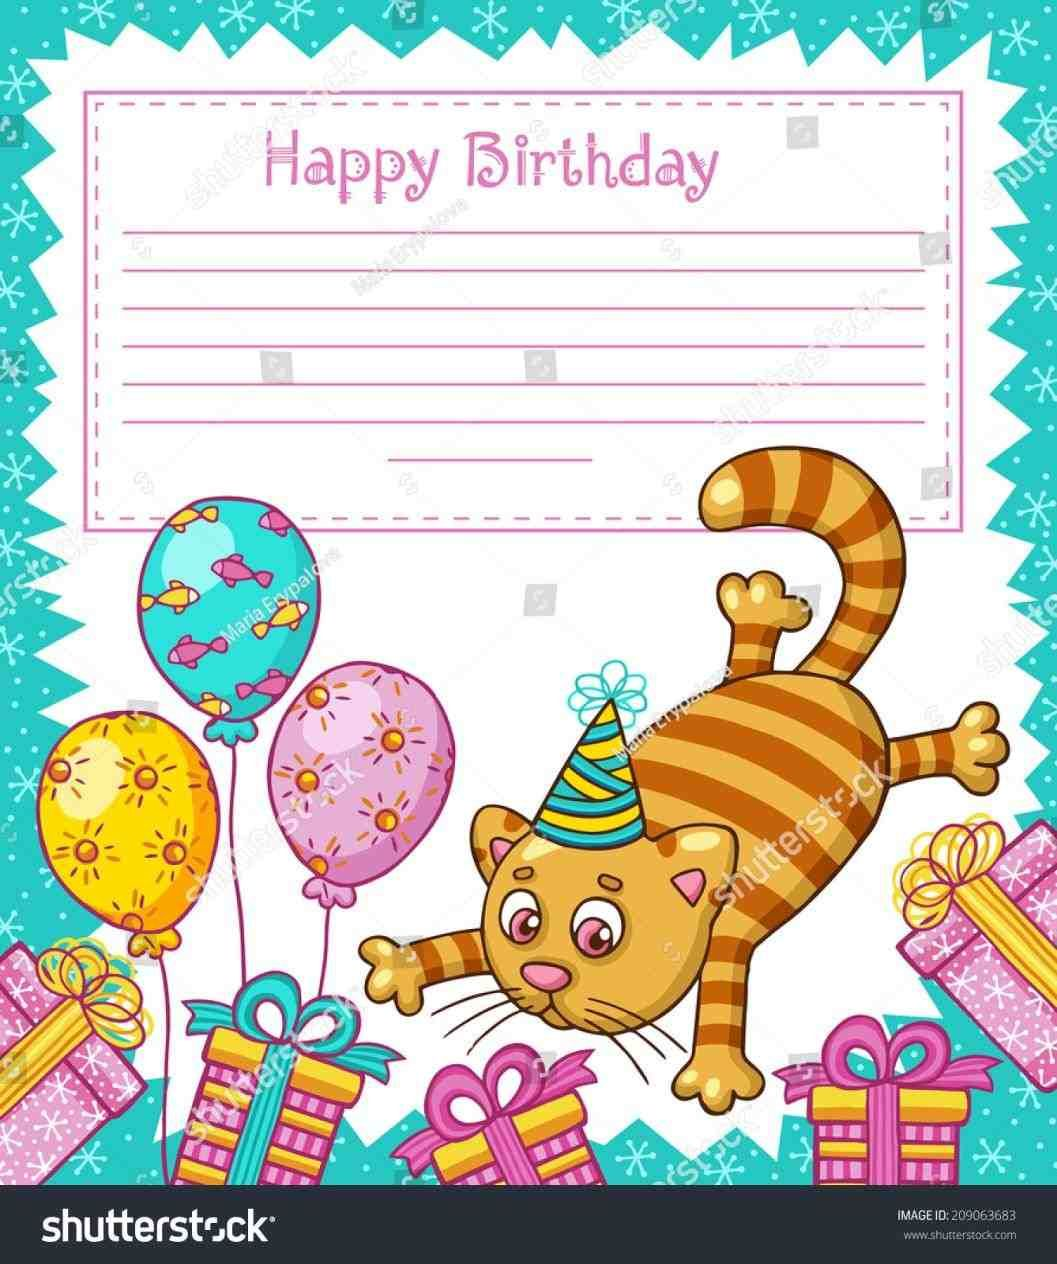 Happy Birthday Wishes From Minion With Cake Hd Pictures Birthday Greeting Cards For Him Alanarasbachc Birthday Greetings Happy Birthday Wishes Birthday Wishes